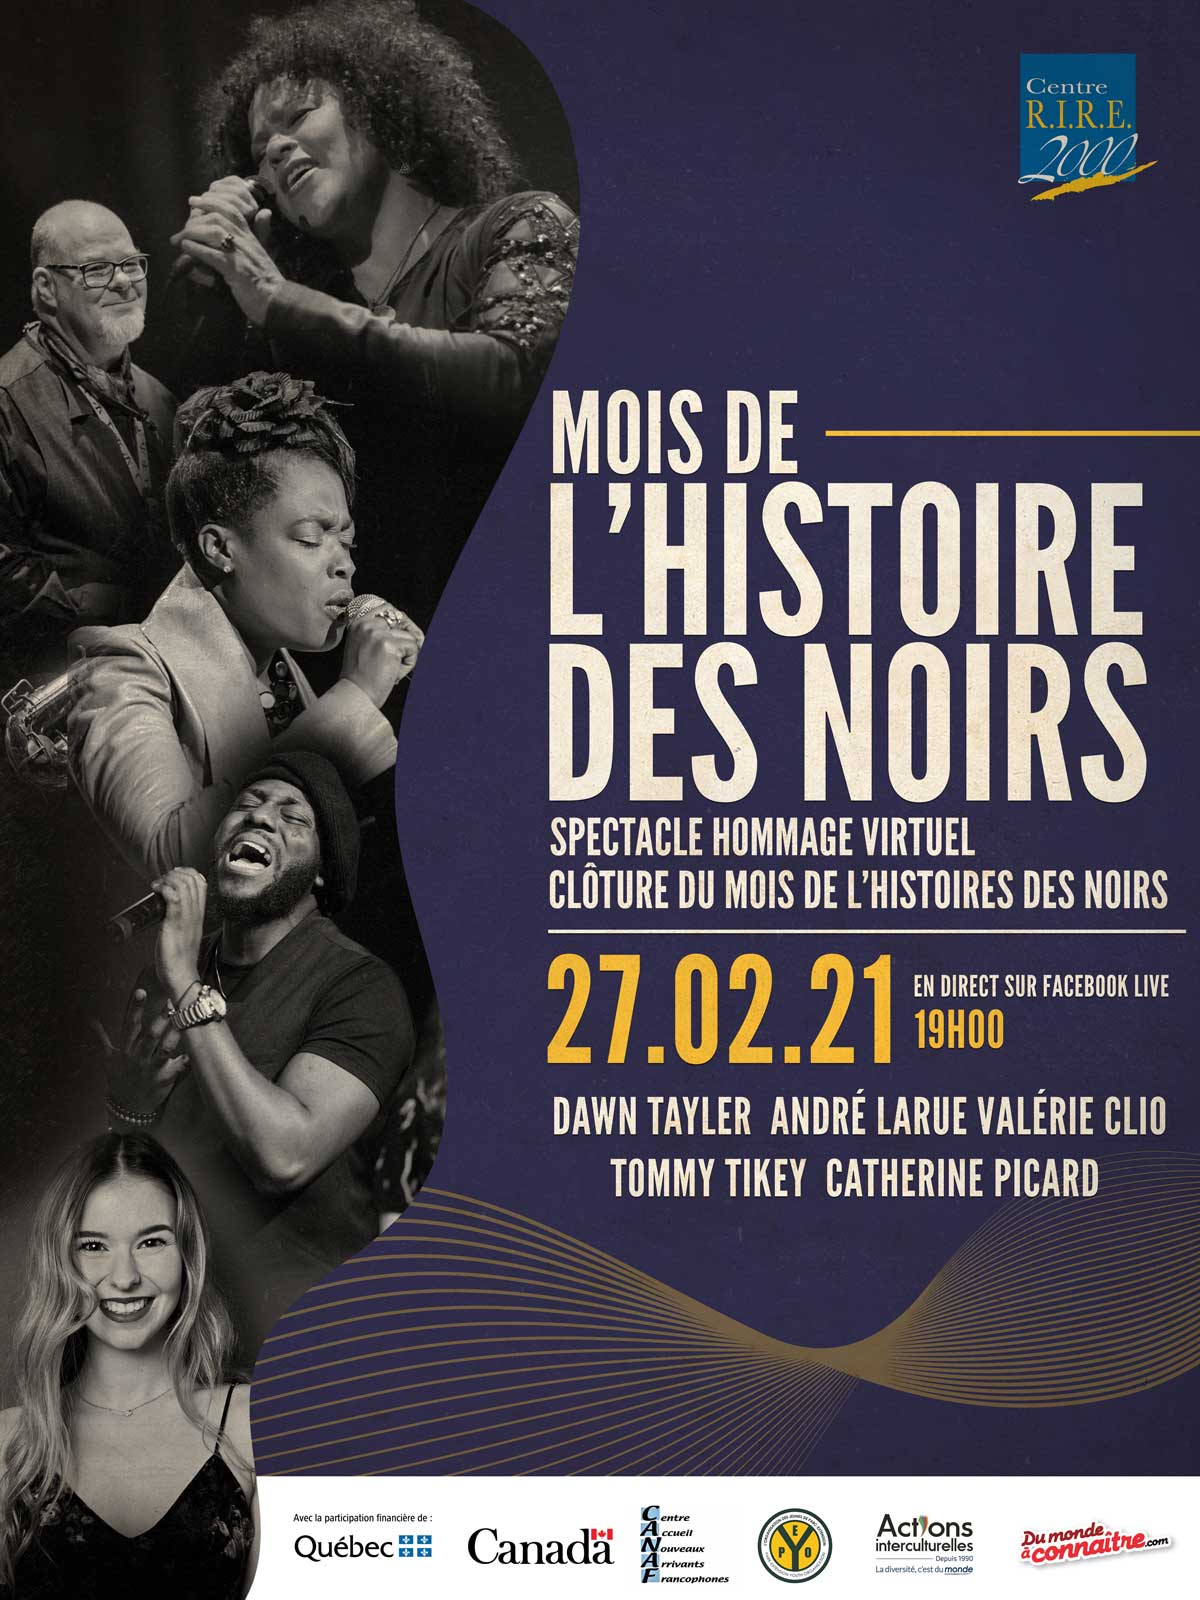 MHN 2021 | Spectacle Hommage virtuel - 27 février